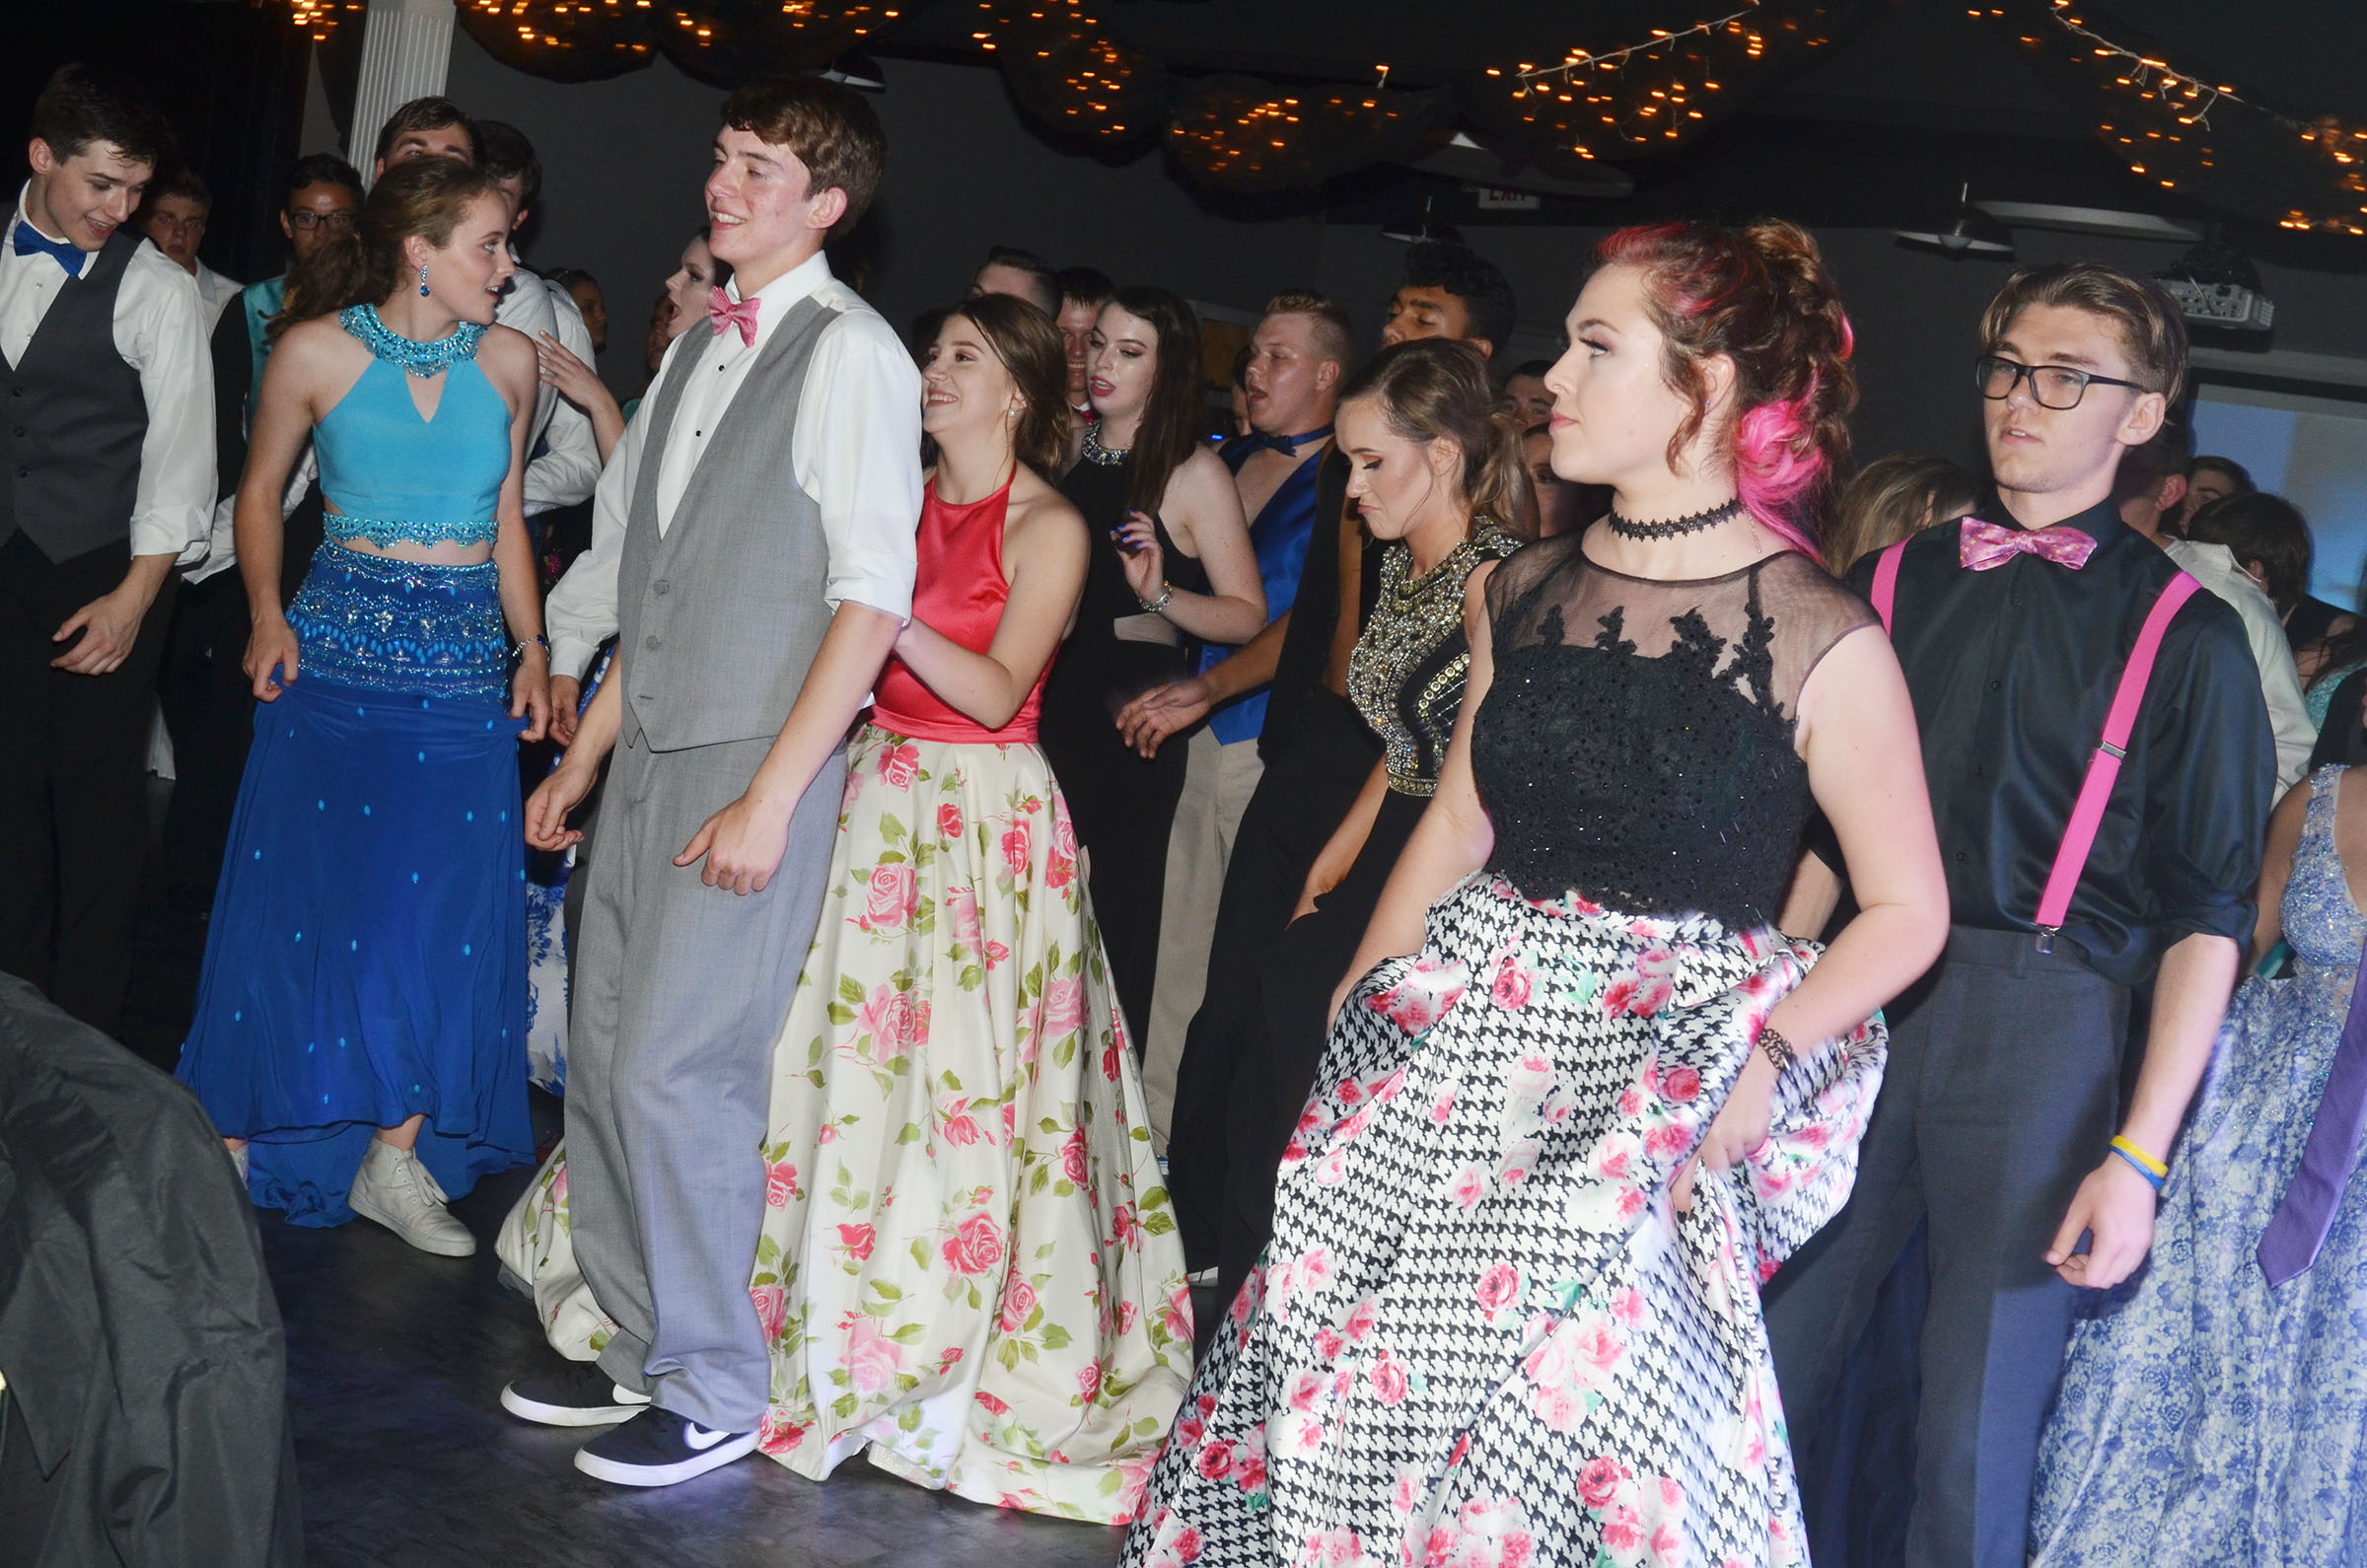 CHS students dance a prom.